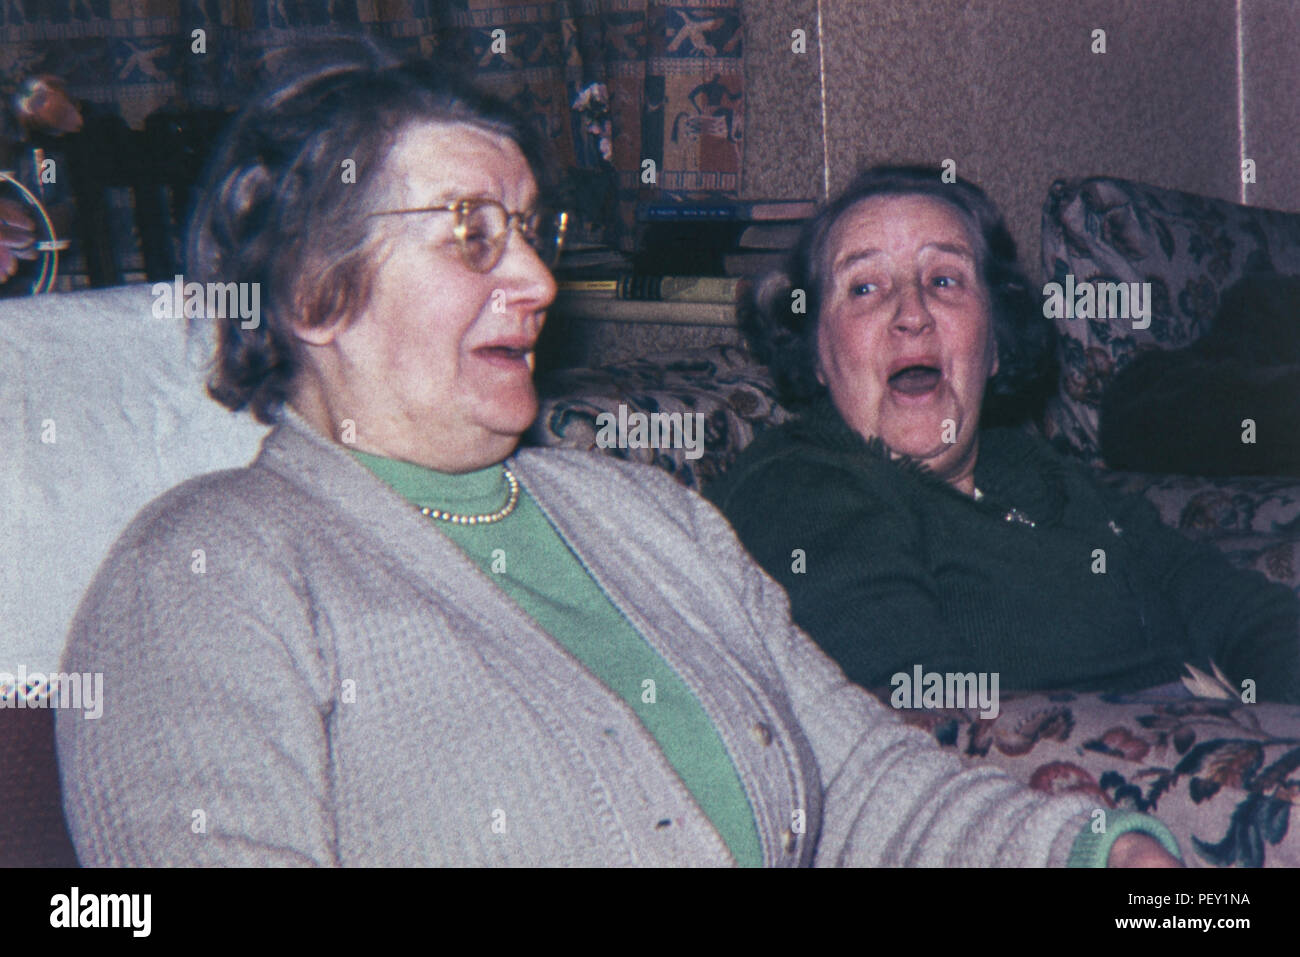 Two old women laughing with each other. Image taken 1960s/70s - Stock Image